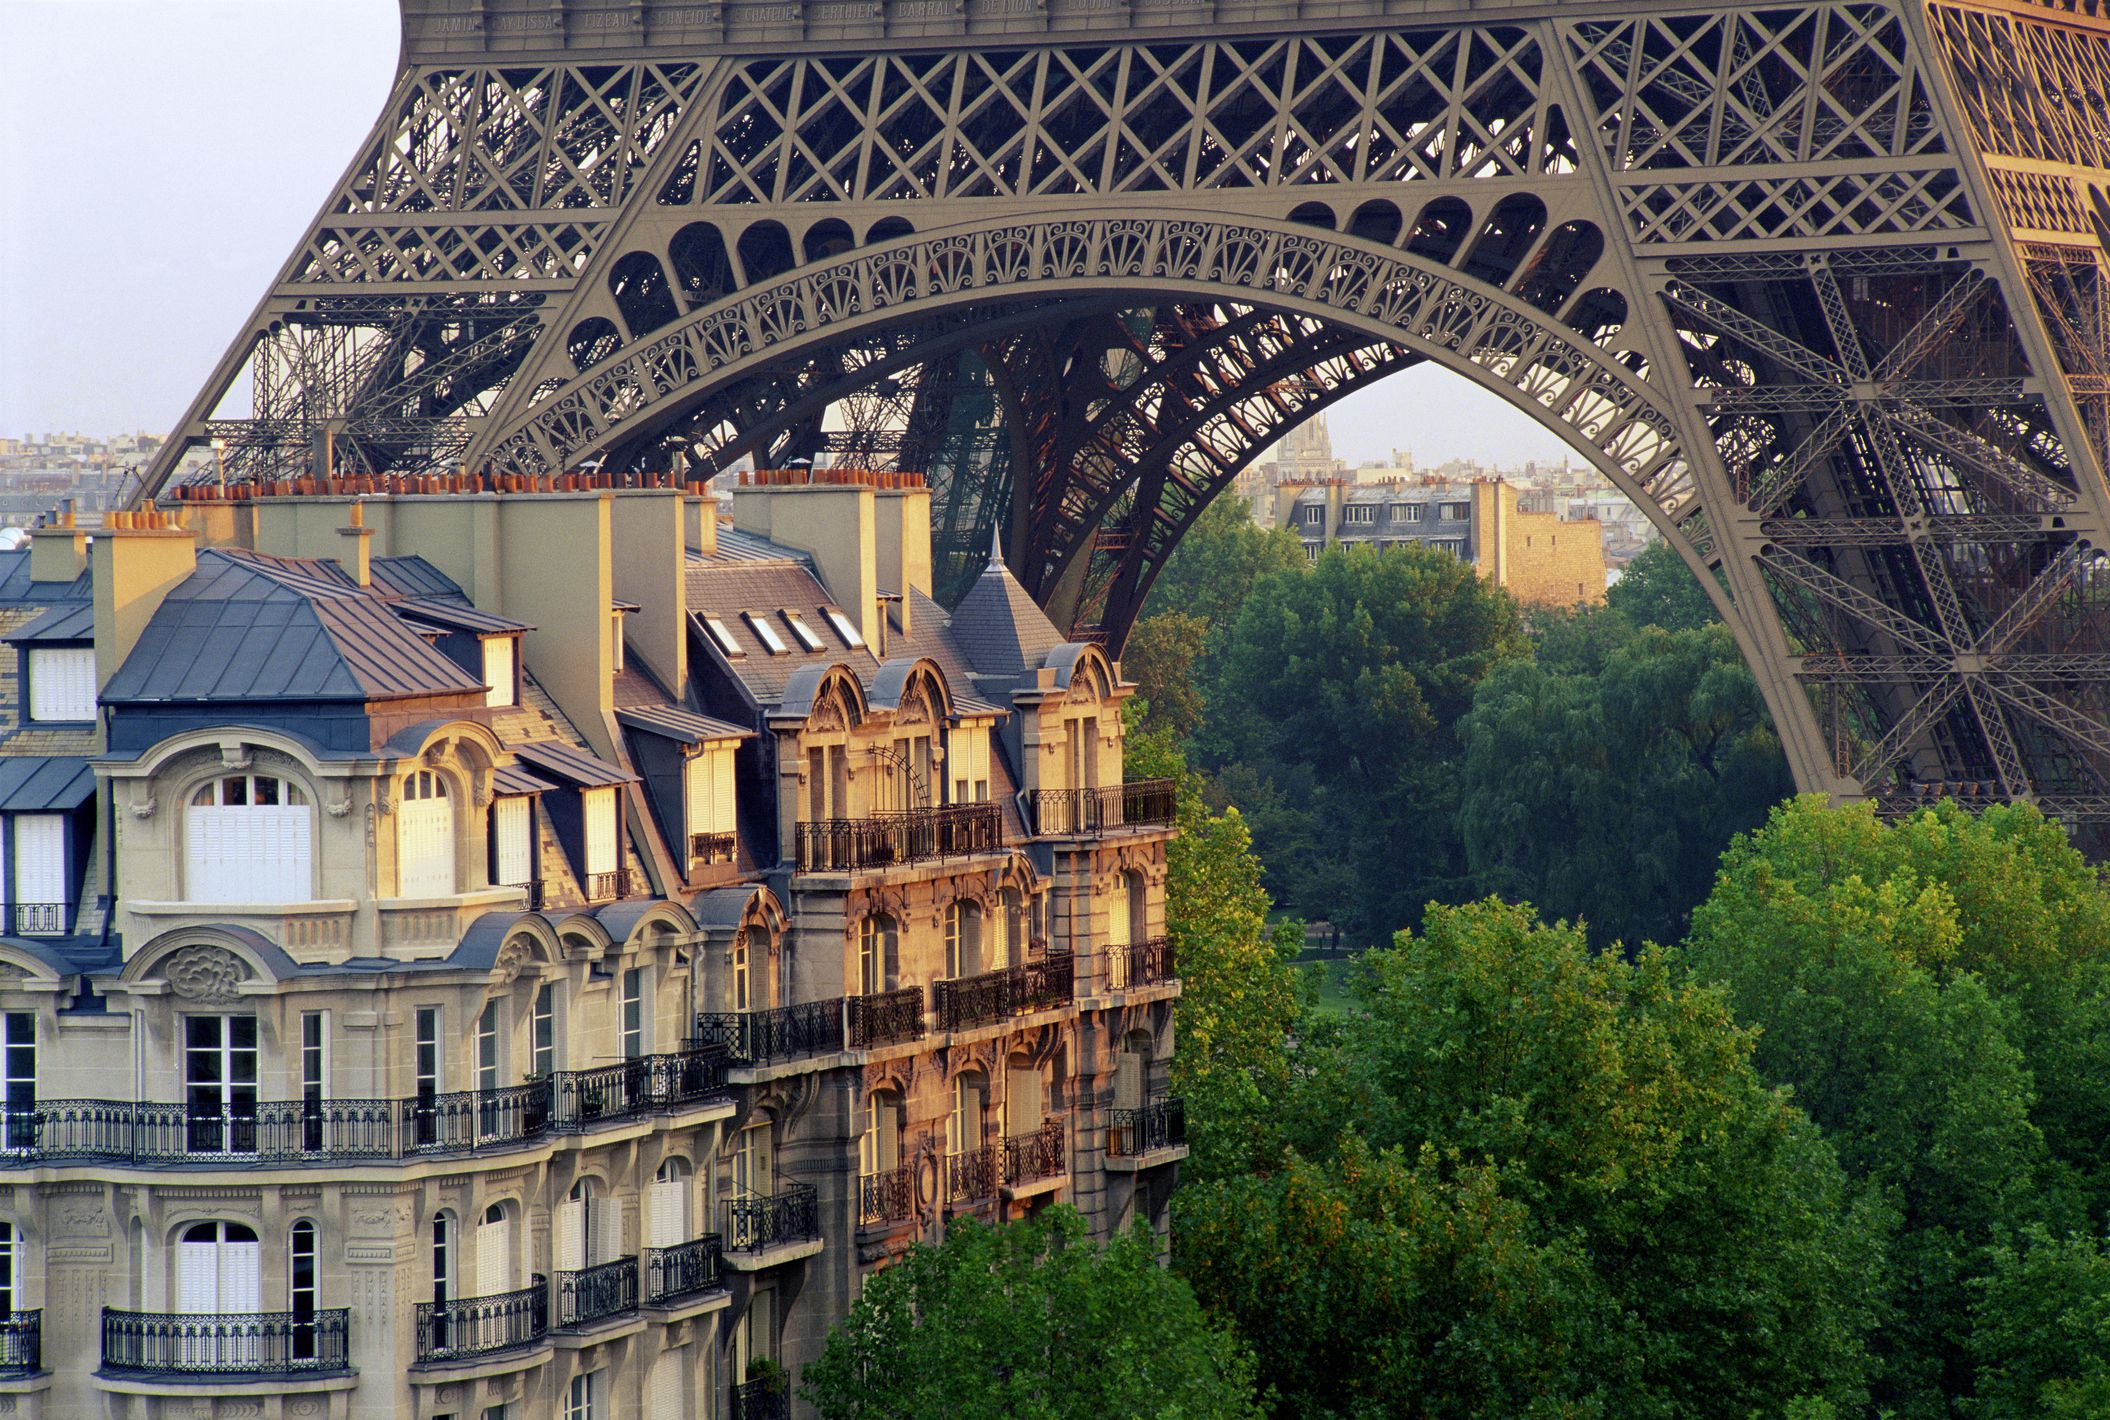 Residential buildings at the foot of the Eiffel Tower, Paris, France